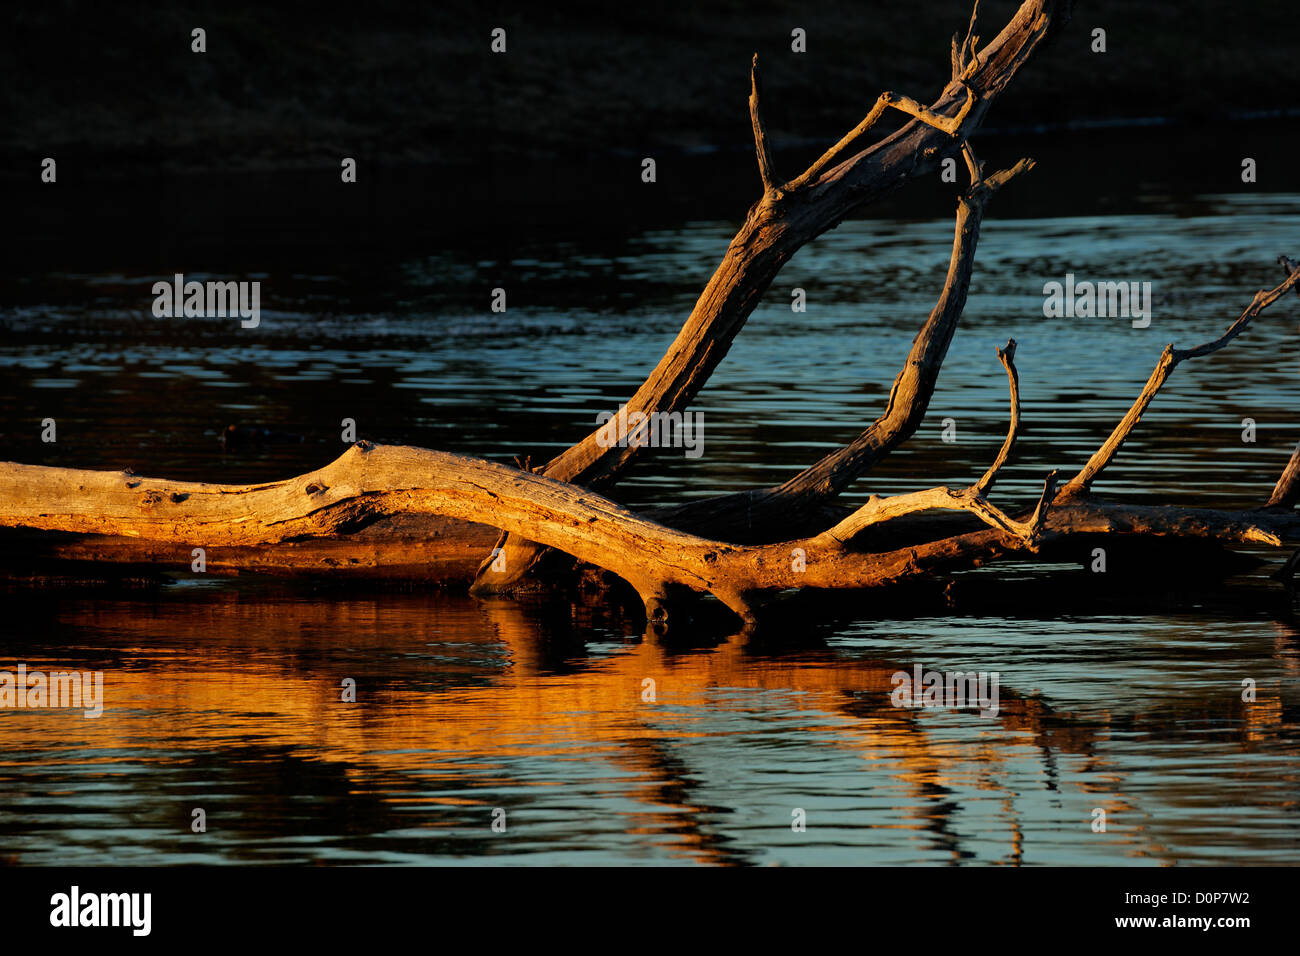 Dead tree branches with reflections in water from glowing late afternoon light - Stock Image